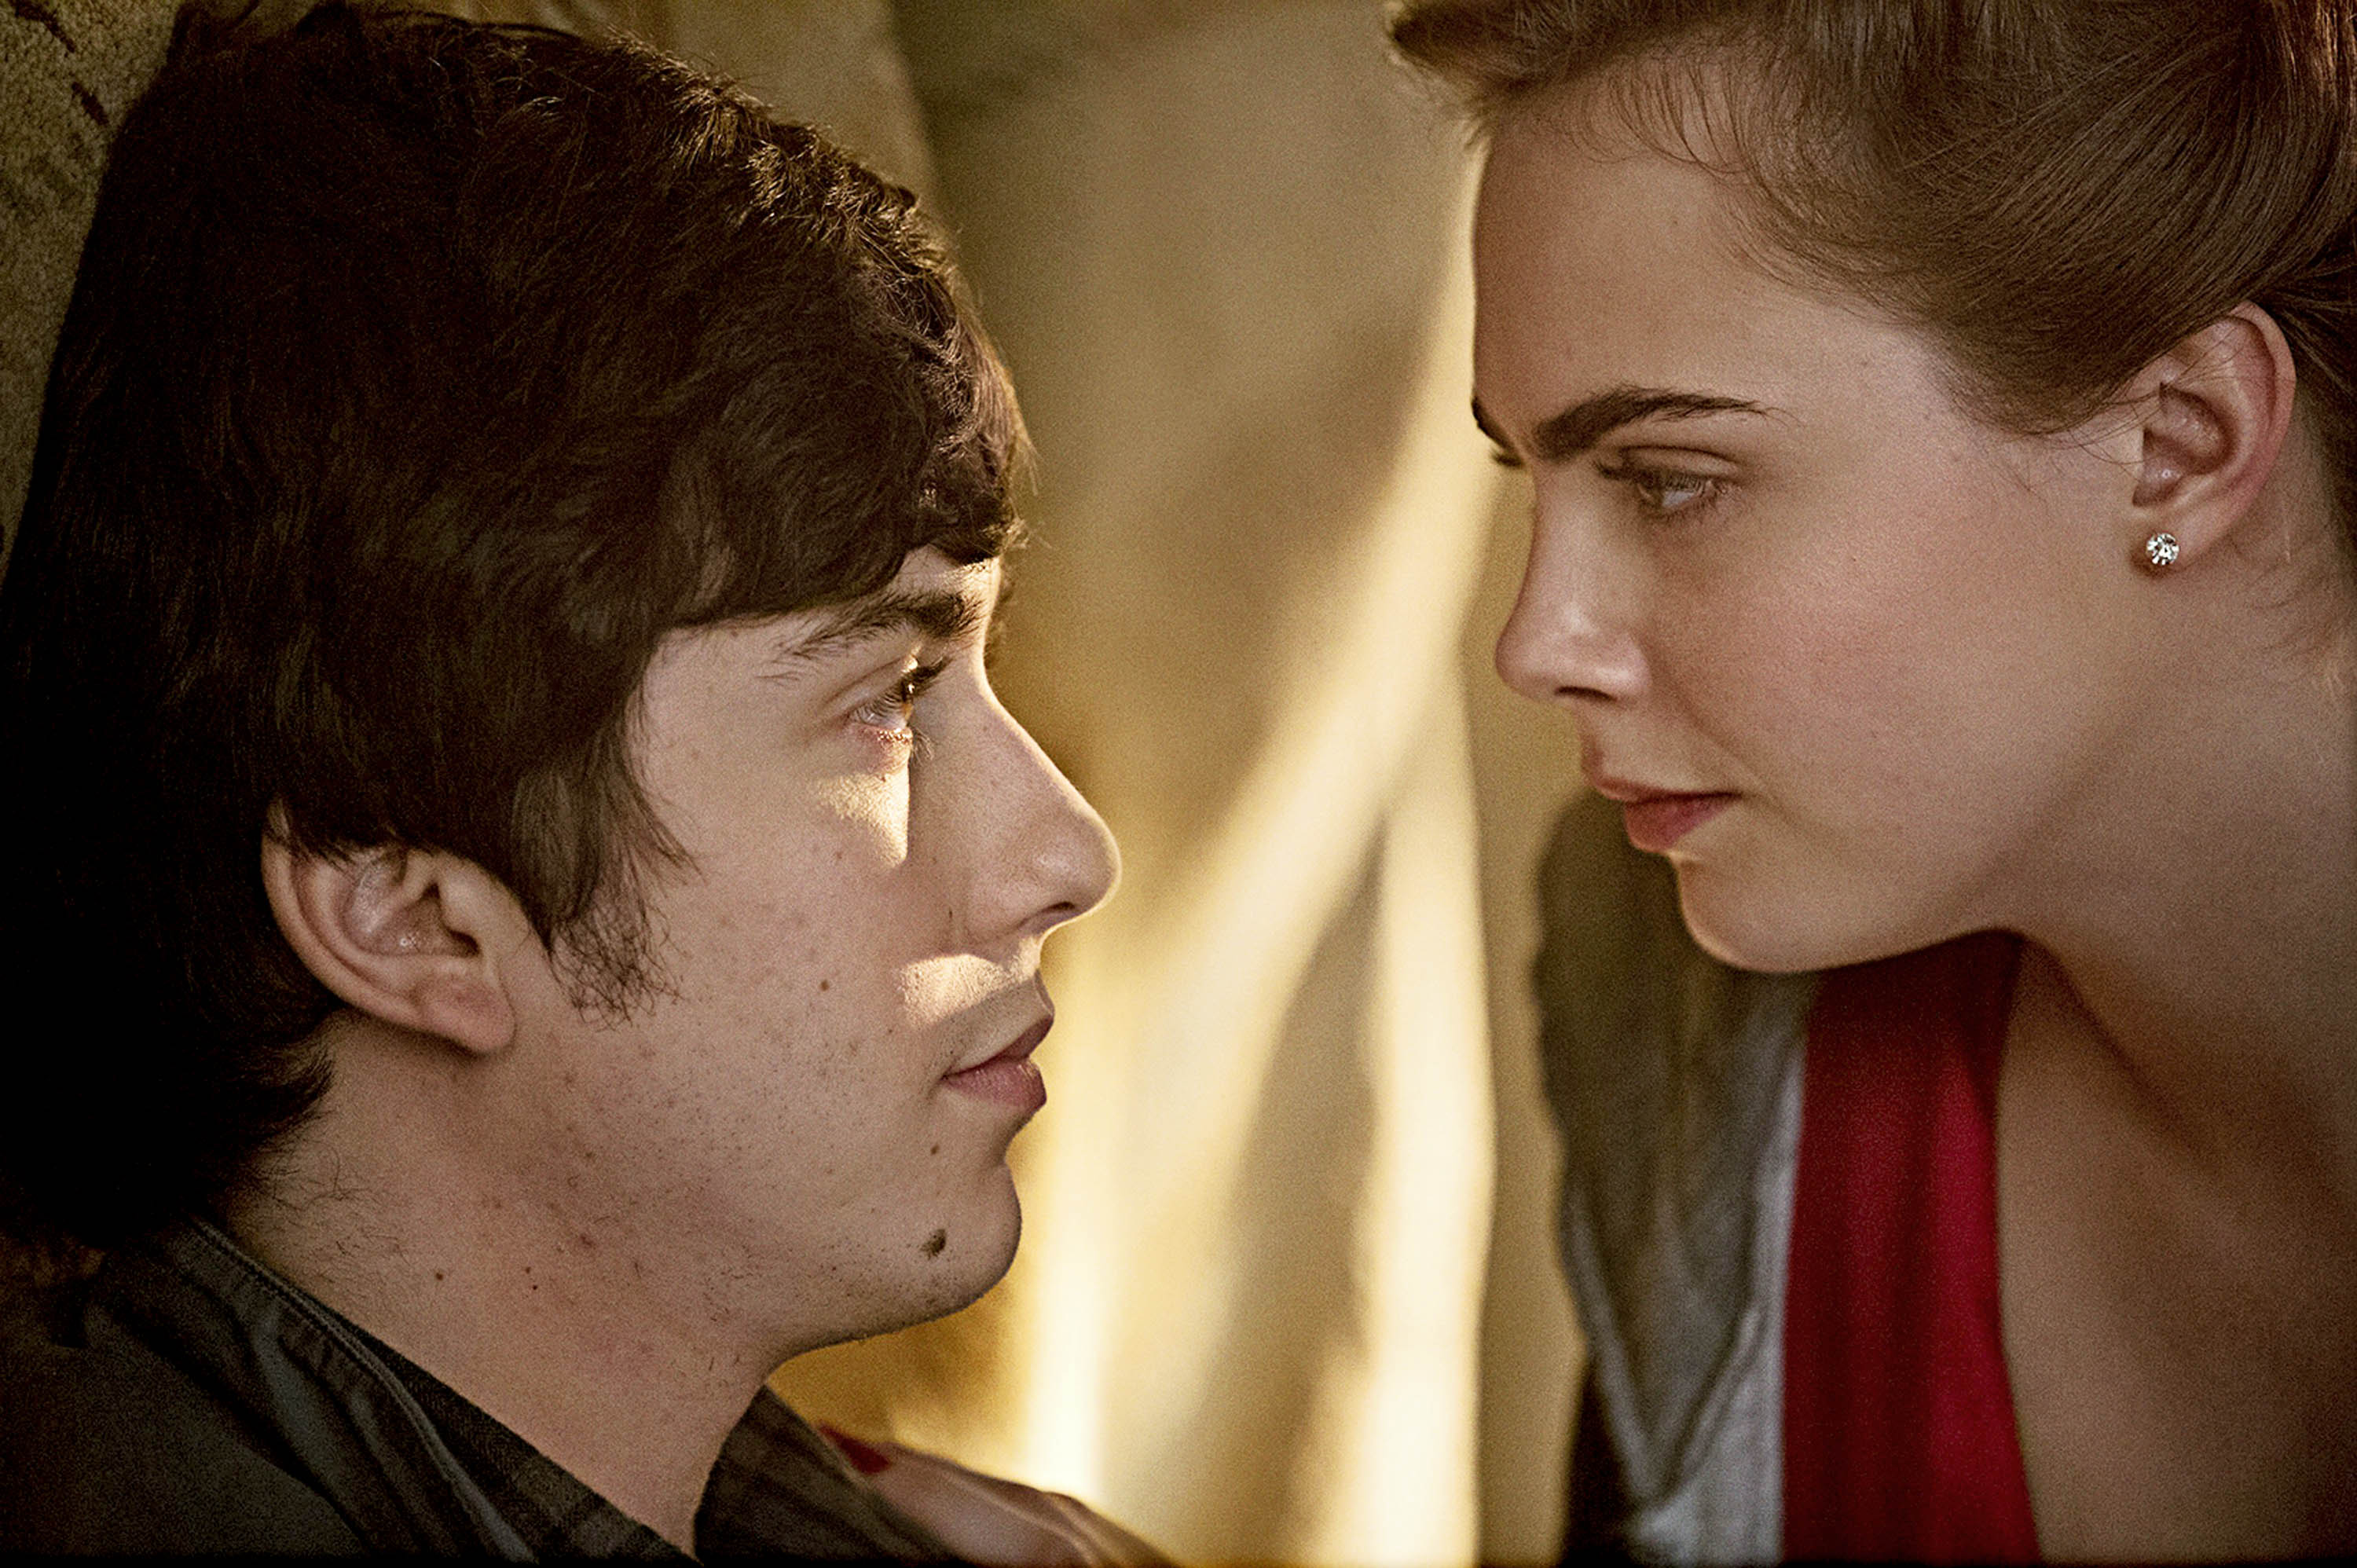 As Margo, style icon Cara Delevingne takes her next-door neighbor Quentin, played by Nat Wolff, on the ride of his life